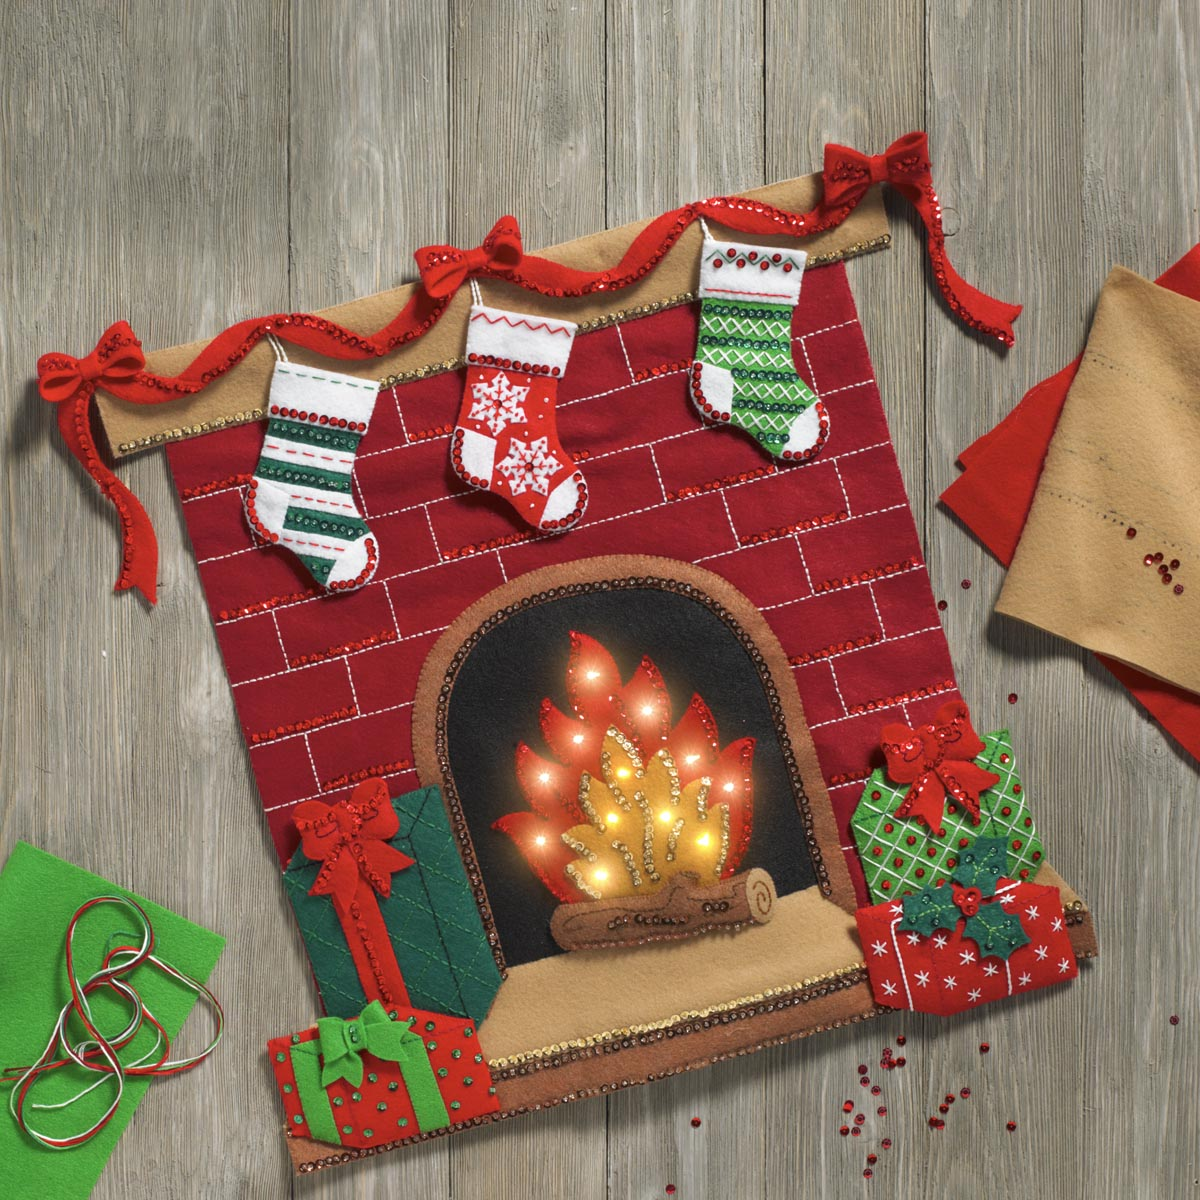 Bucilla ® Seasonal - Felt - Home Decor - Fireside Glow Wall Hanging with Lights